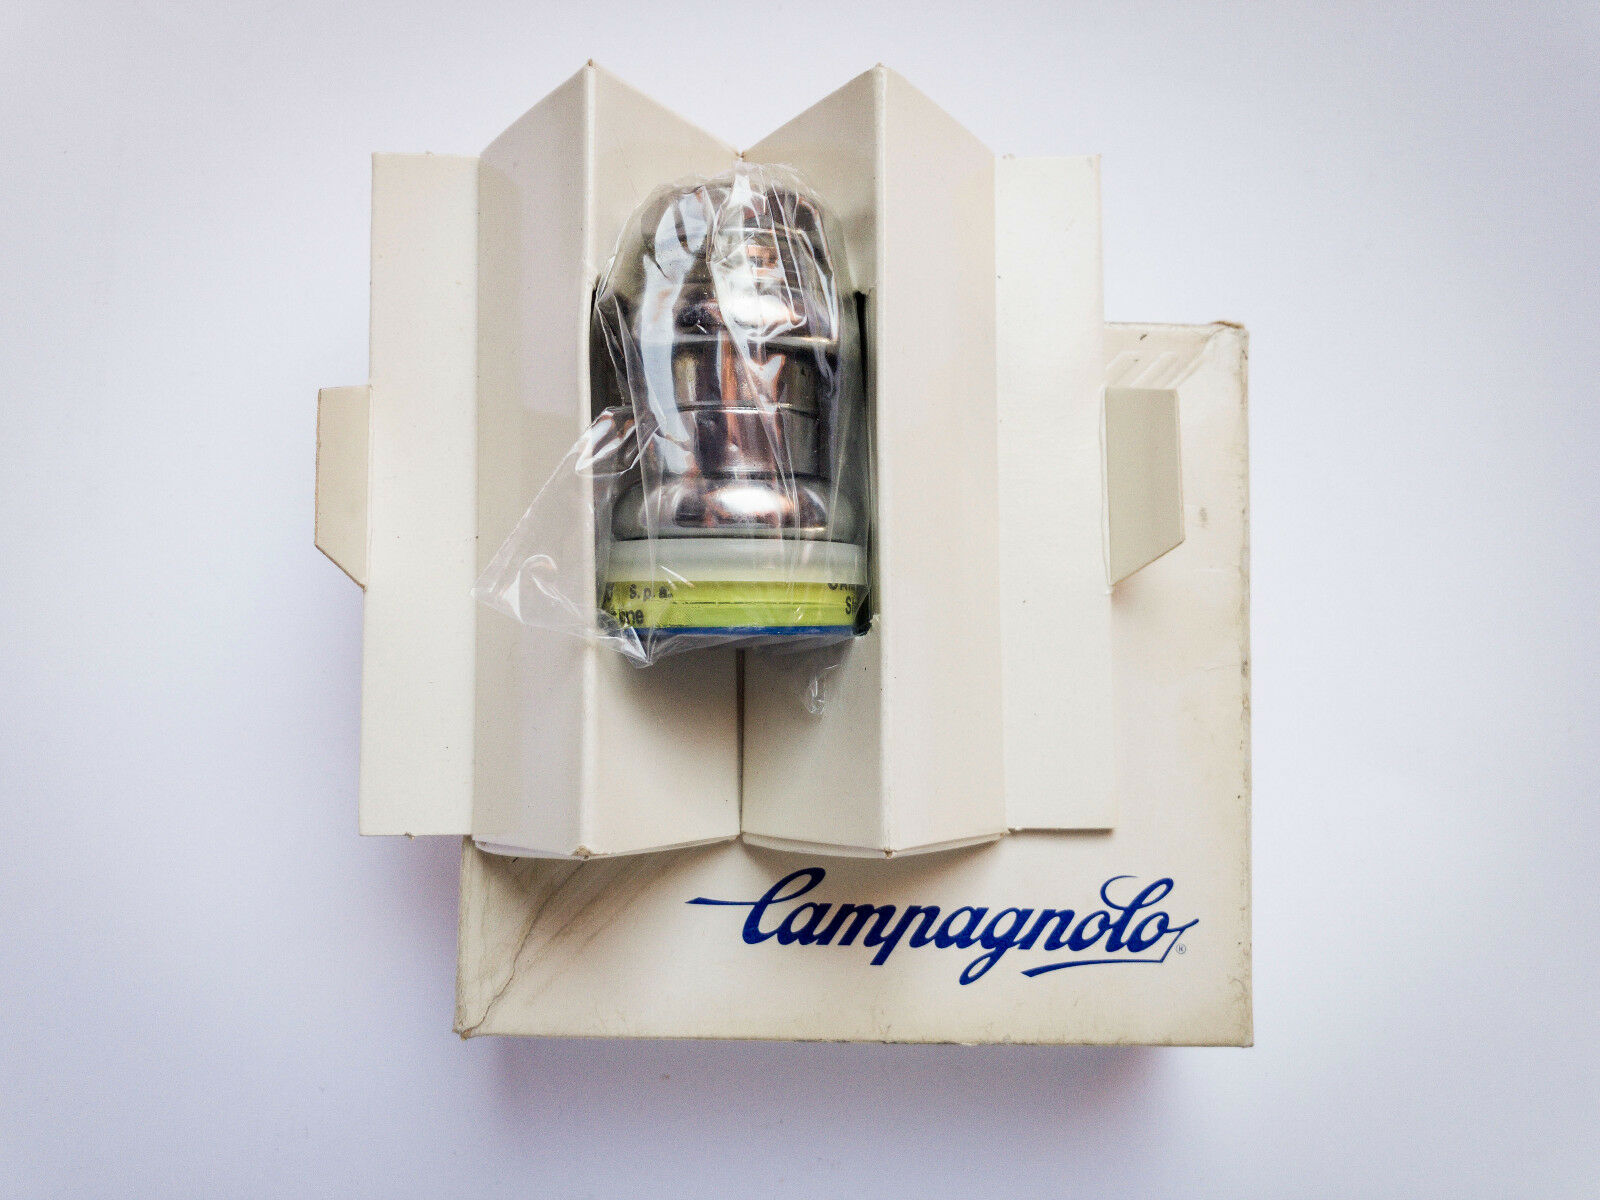 Vintage'80s Campagnolo Triomphe ITA  Thread steel headset serie sterzo NEW IN BOX  is discounted